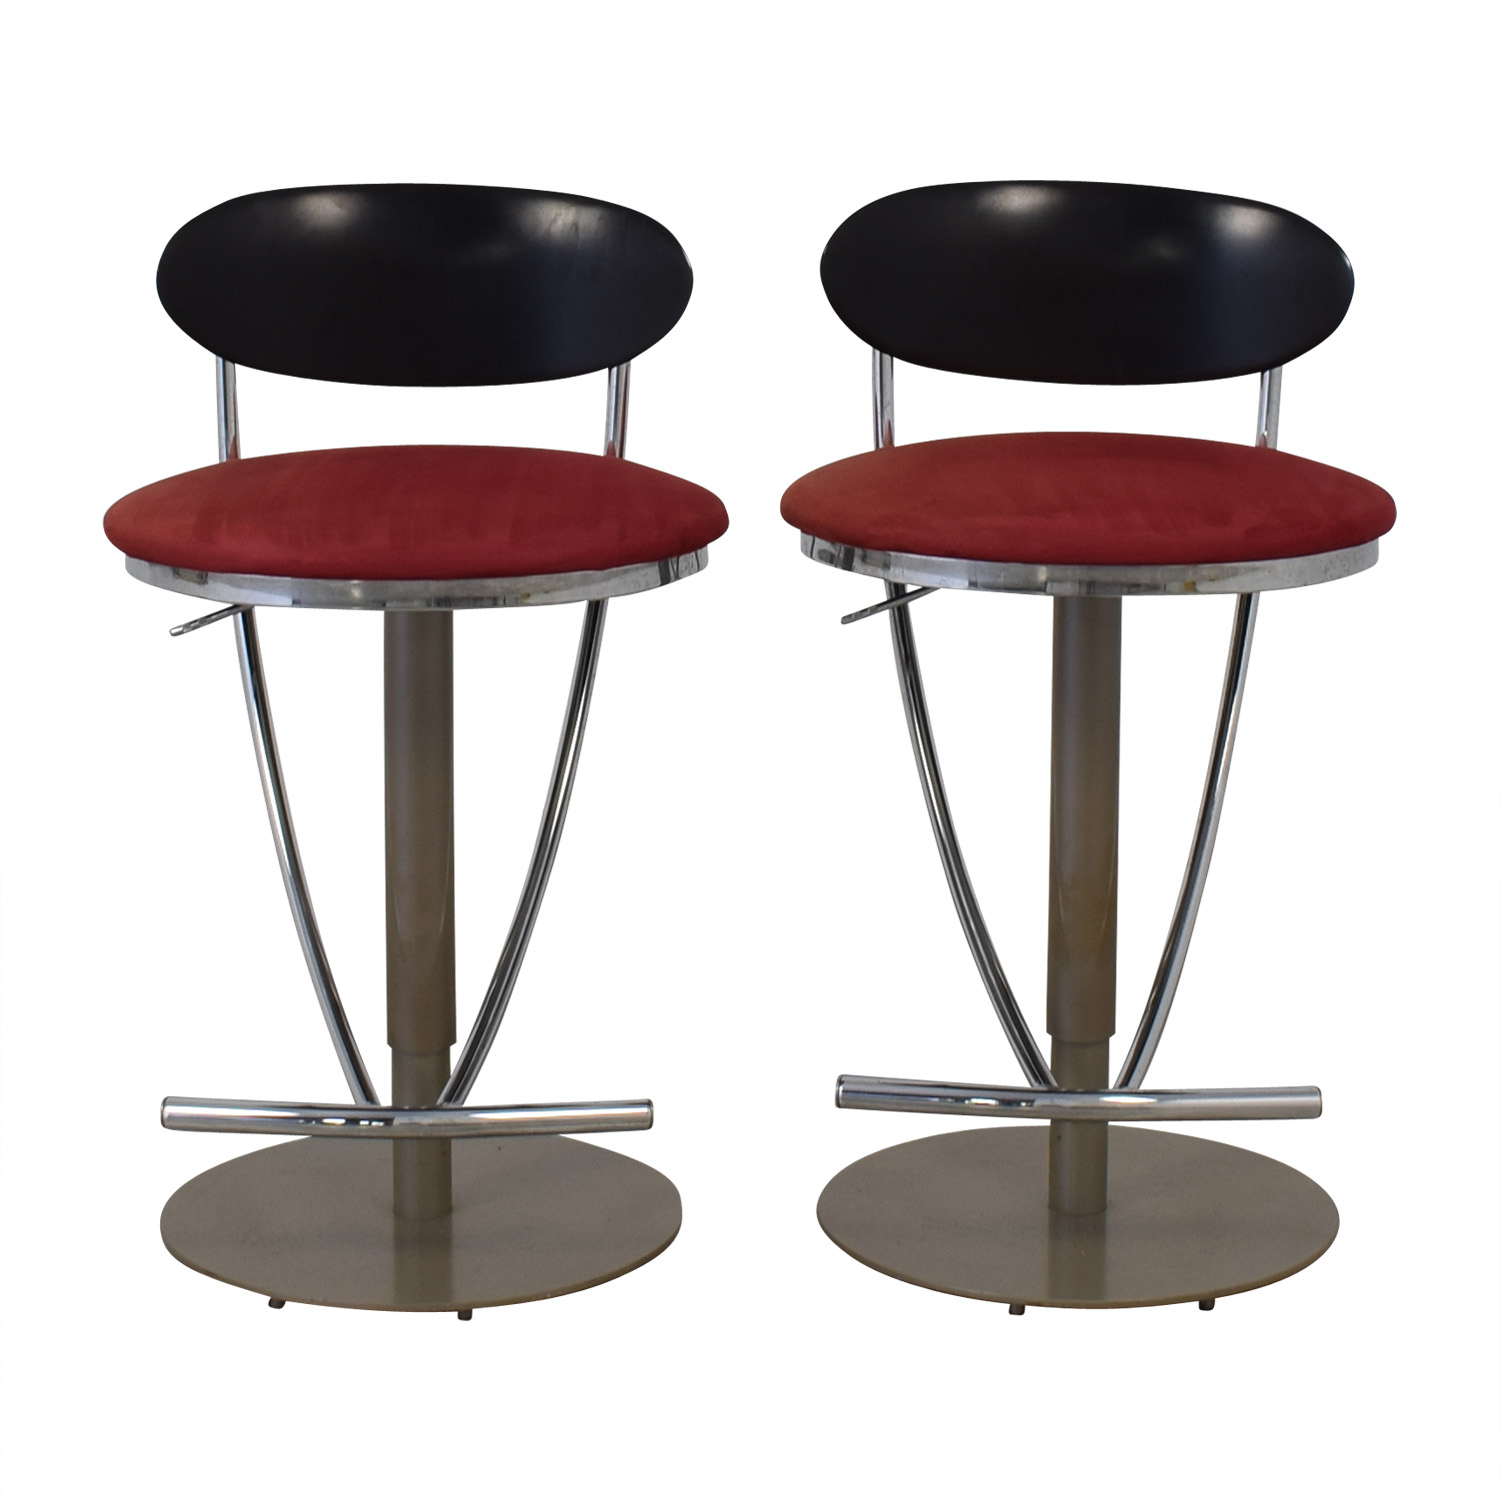 Jensen Lewis Nova Bar Stools / Chairs